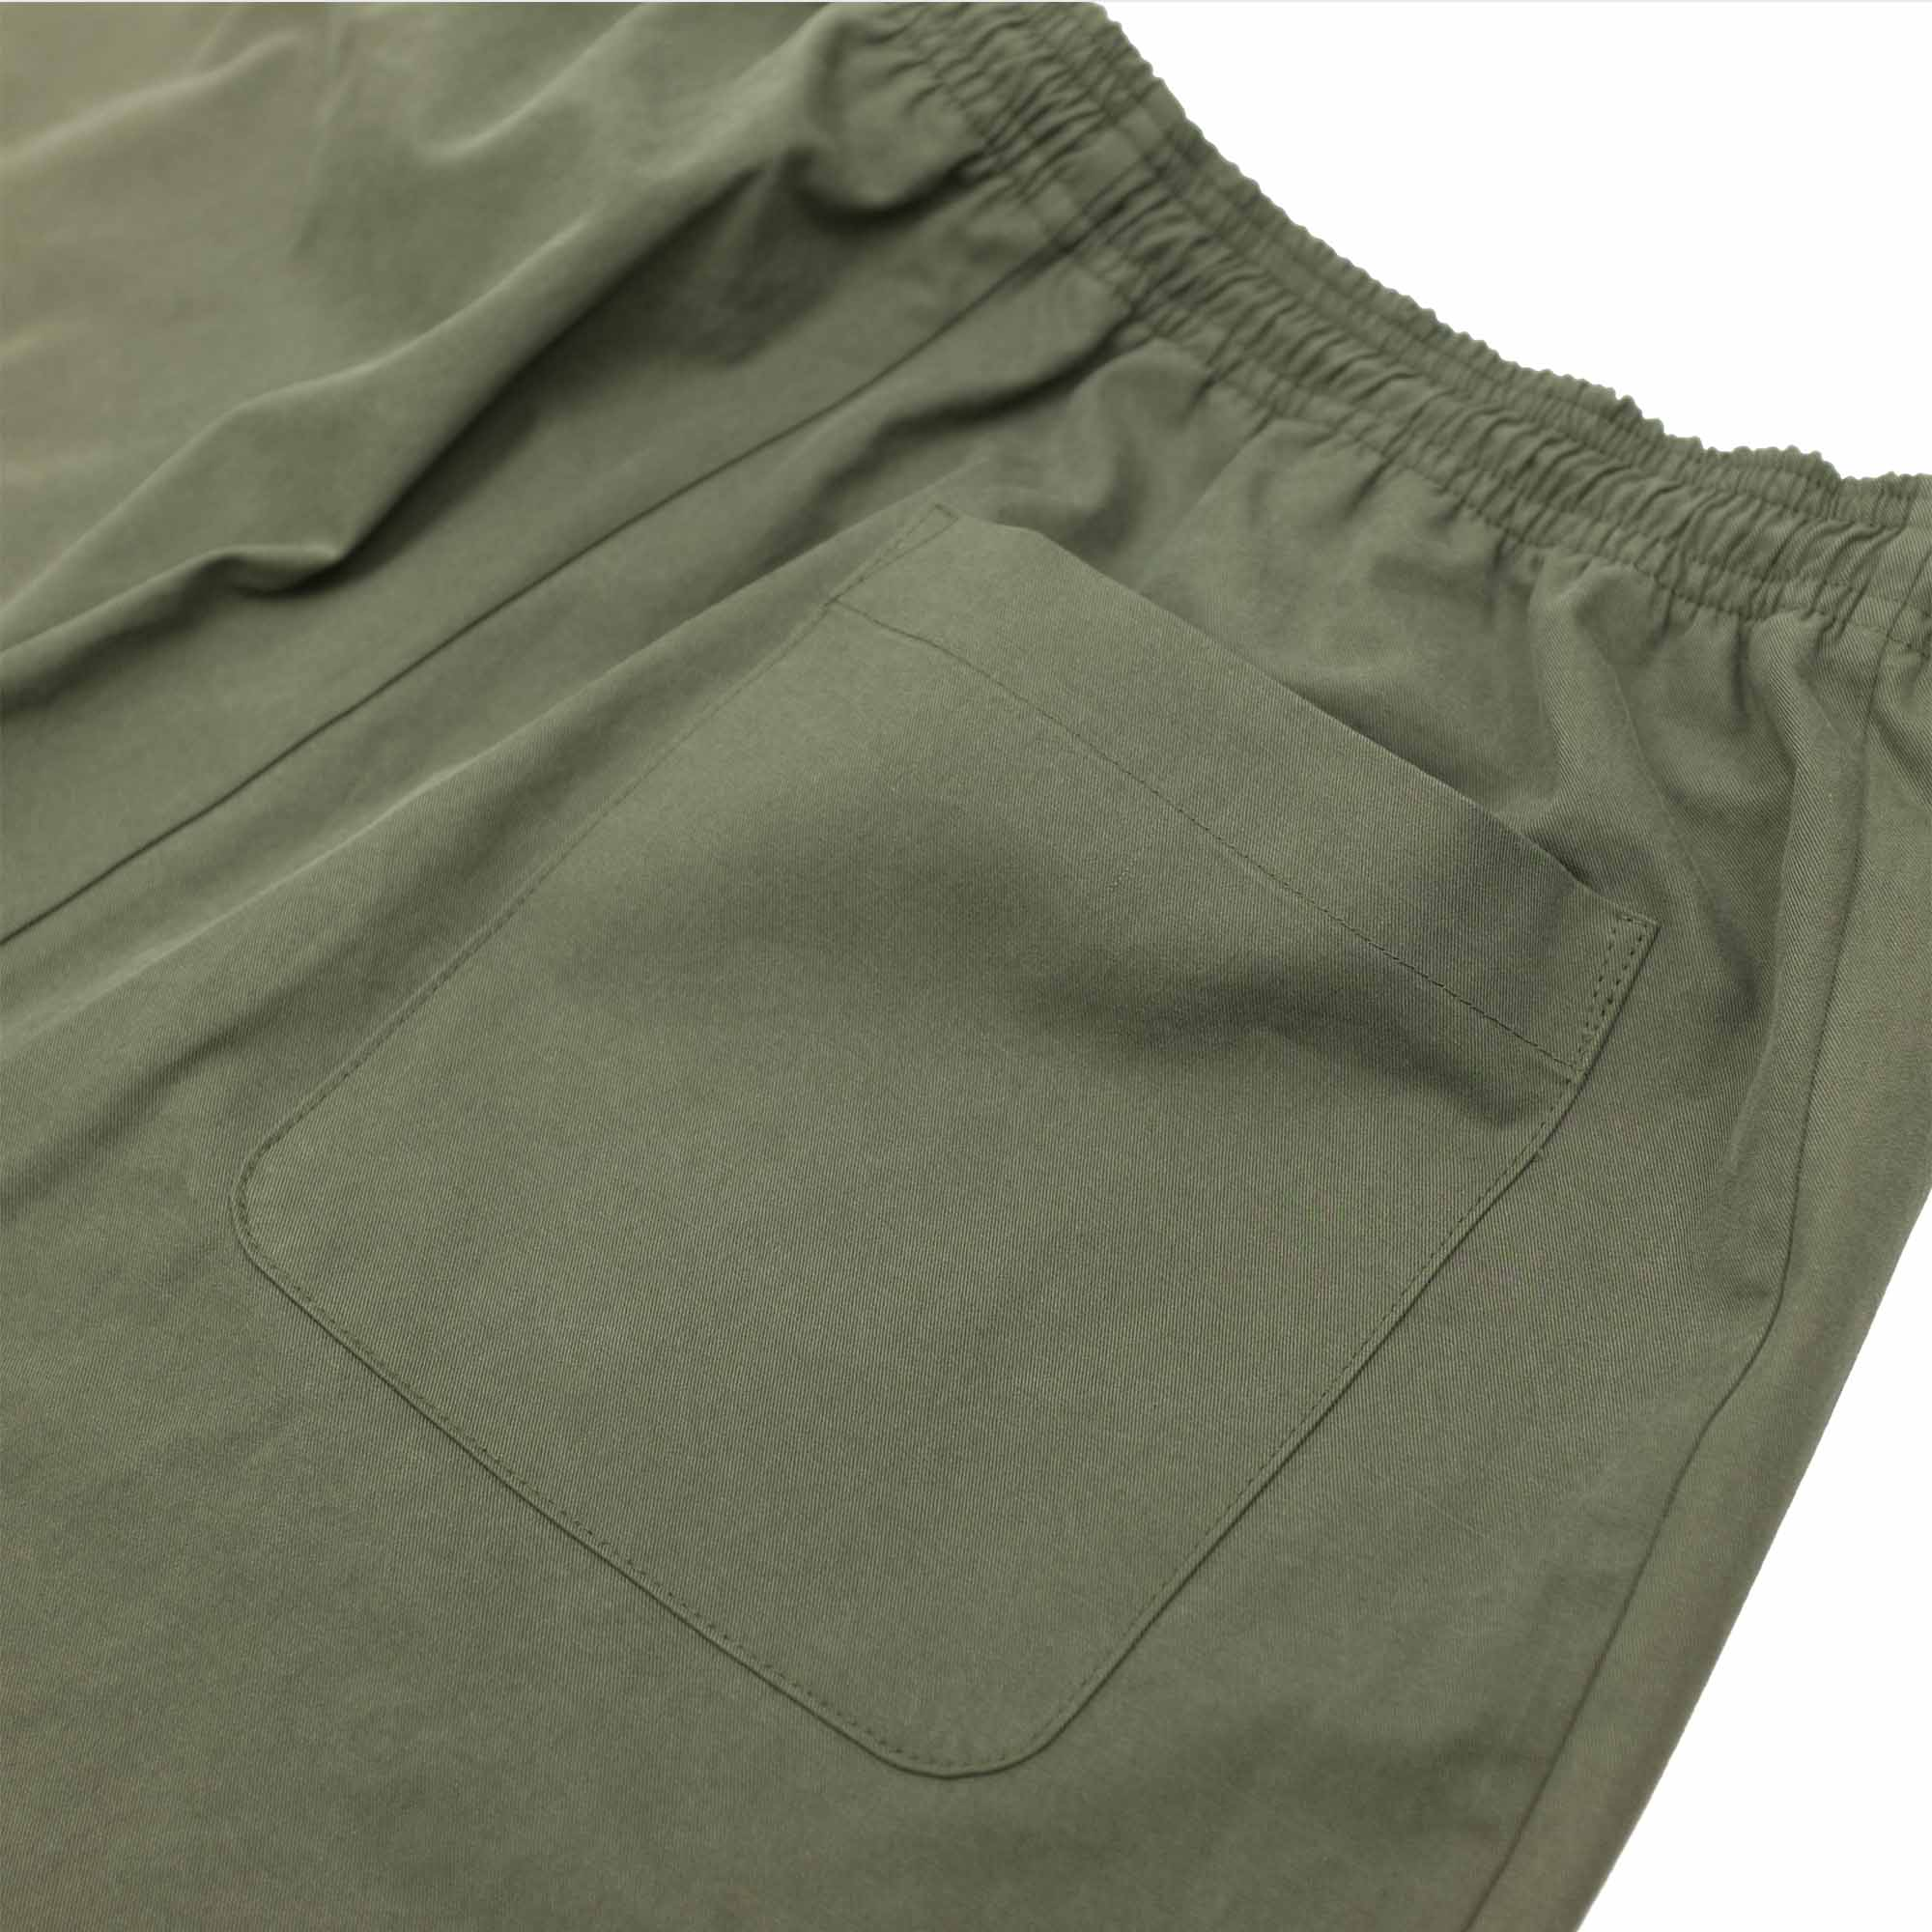 Sulfur Dyed Nidom Training Shorts Khaki 7